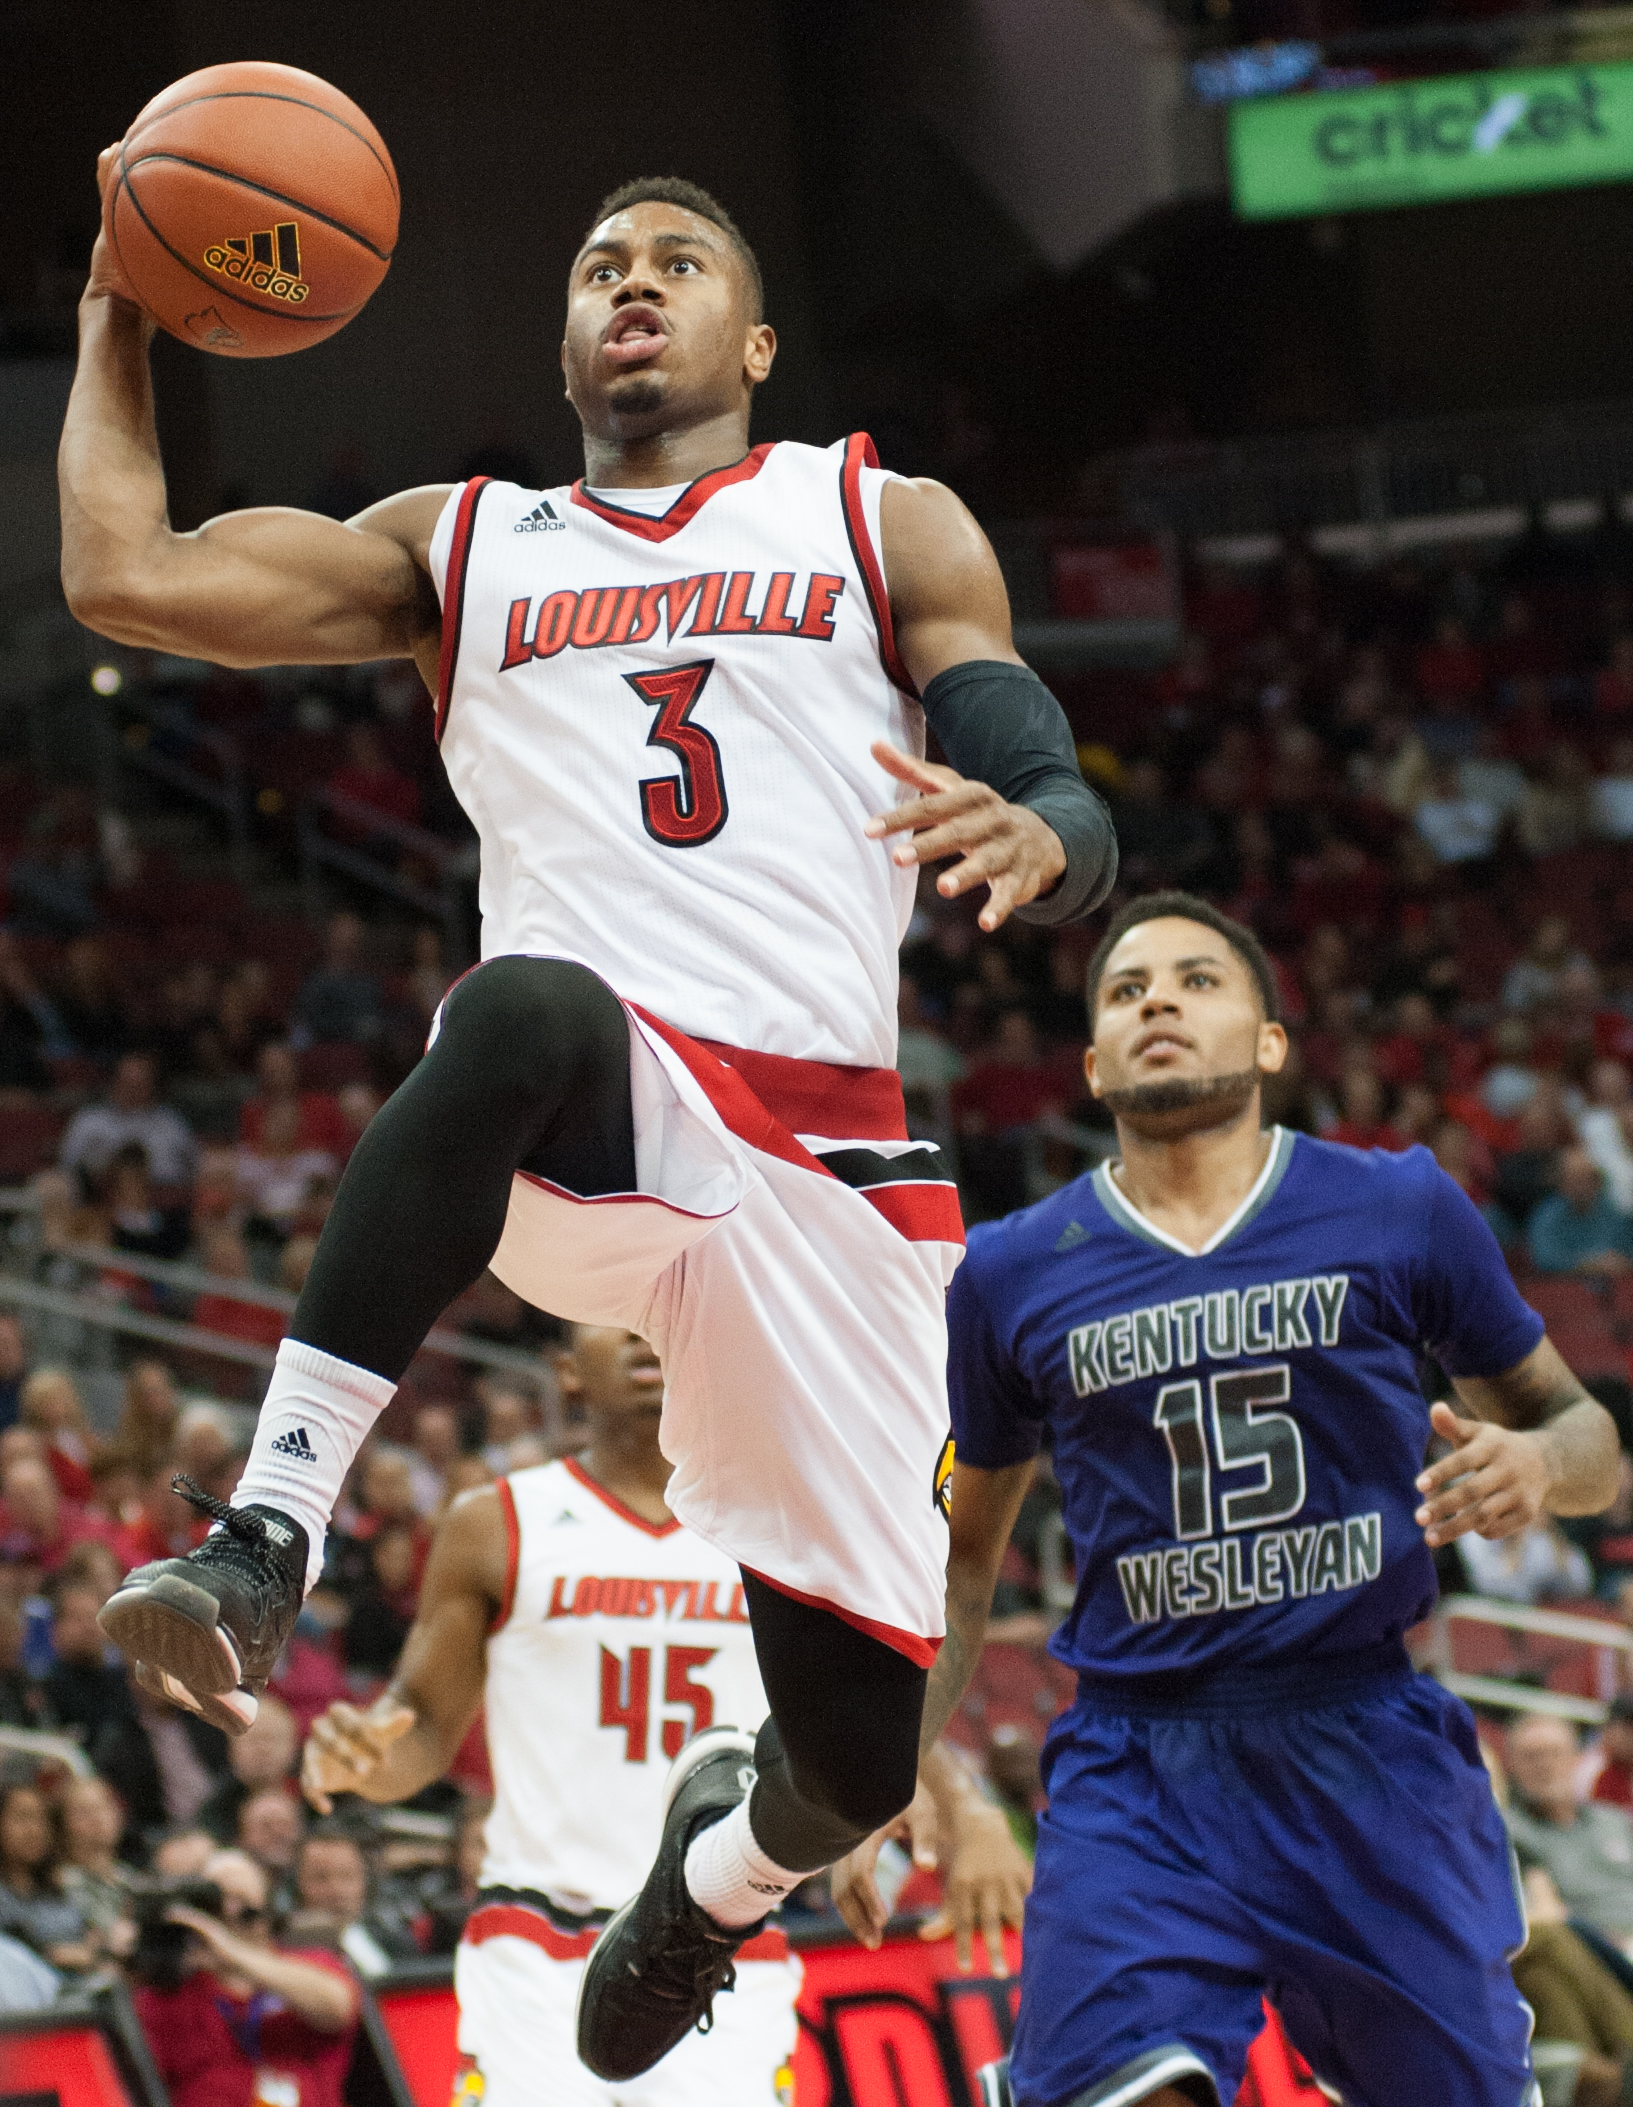 Louisville v. Kentucky basketball game